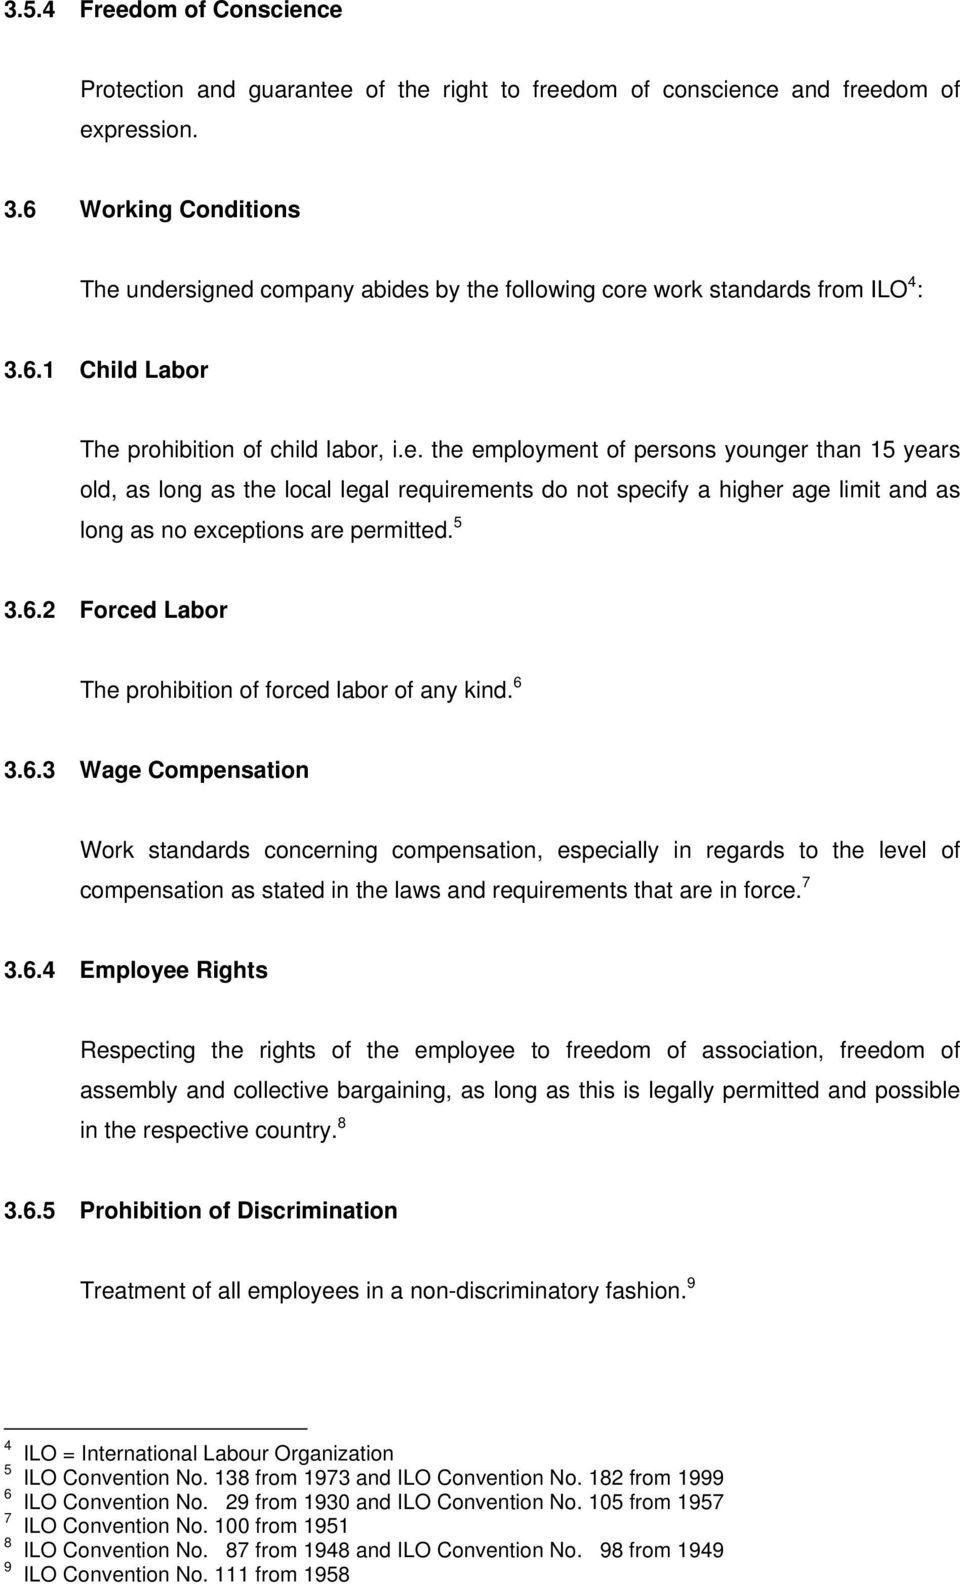 5 3.6.2 Forced Labor The prohibition of forced labor of any kind. 6 3.6.3 Wage Compensation Work standards concerning compensation, especially in regards to the level of compensation as stated in the laws and requirements that are in force.